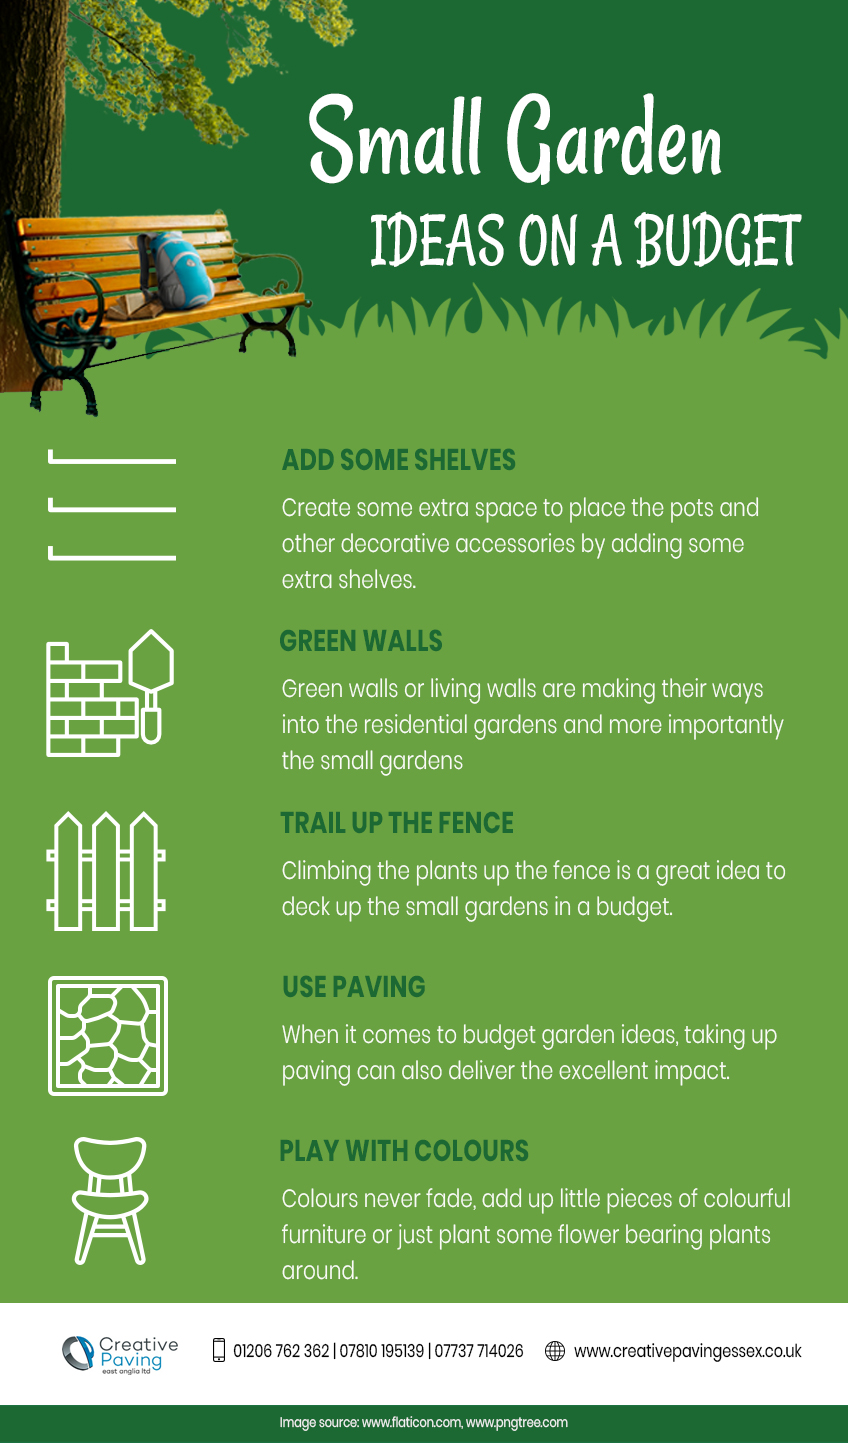 Small Garden Ideas on a Budget Infographic | Creative Paving on Garden Design Ideas On A Budget  id=76165